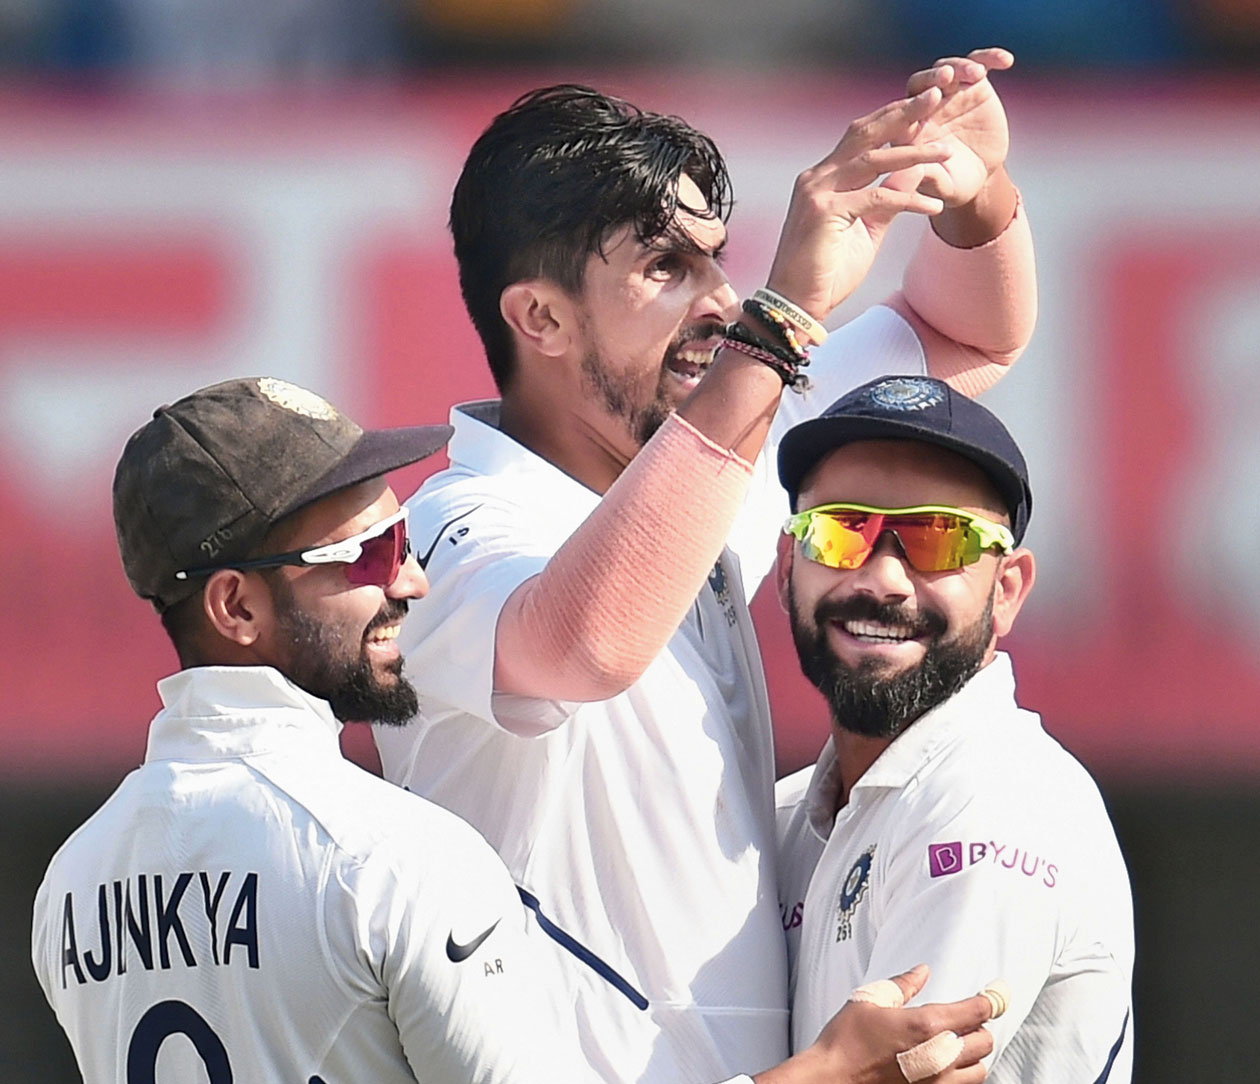 Ishant Sharma celebrates with Virat Kohli and Ajinkya Rahane the dismissal of Shadman Islam on the first day of the first Test in Indore on Thursday.